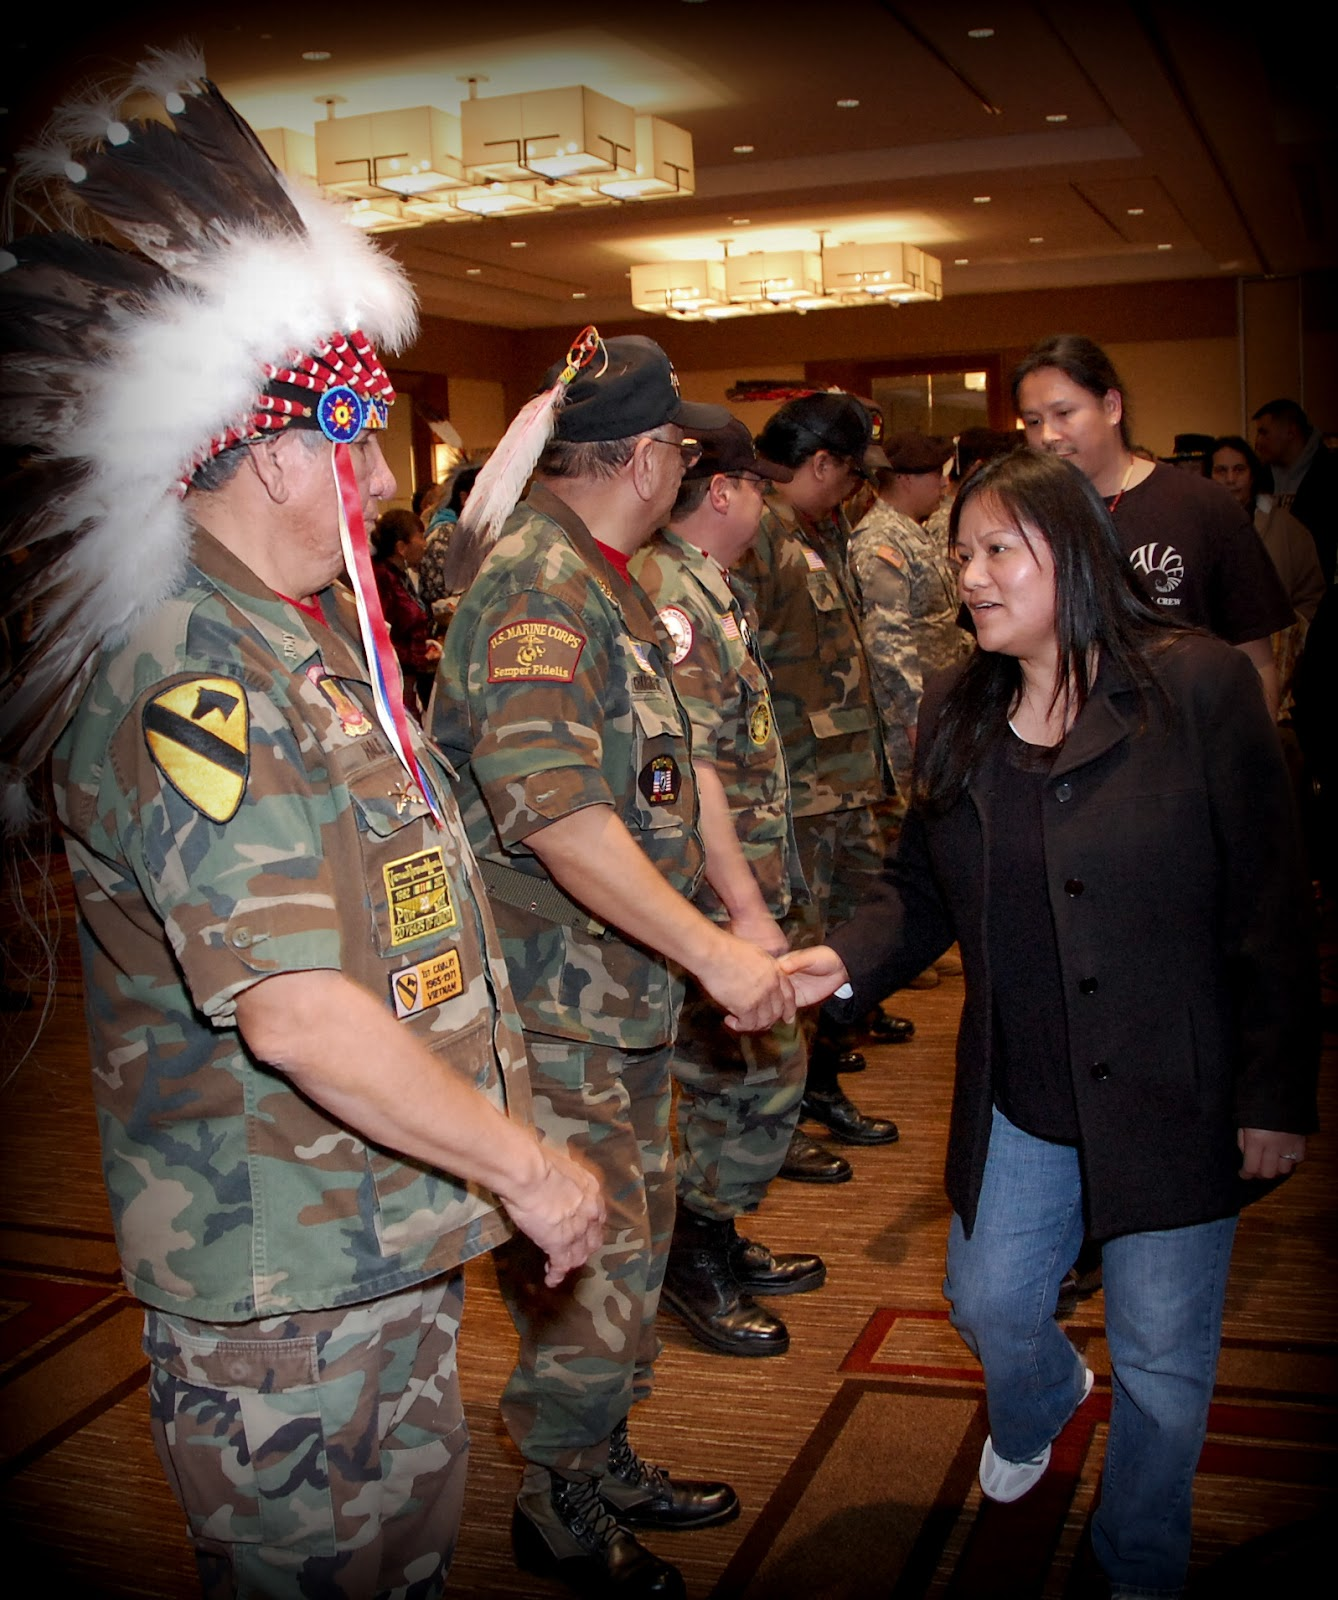 Native Veterans in Washington DC thanking their fellow veterans - Photo: Vincent Schilling